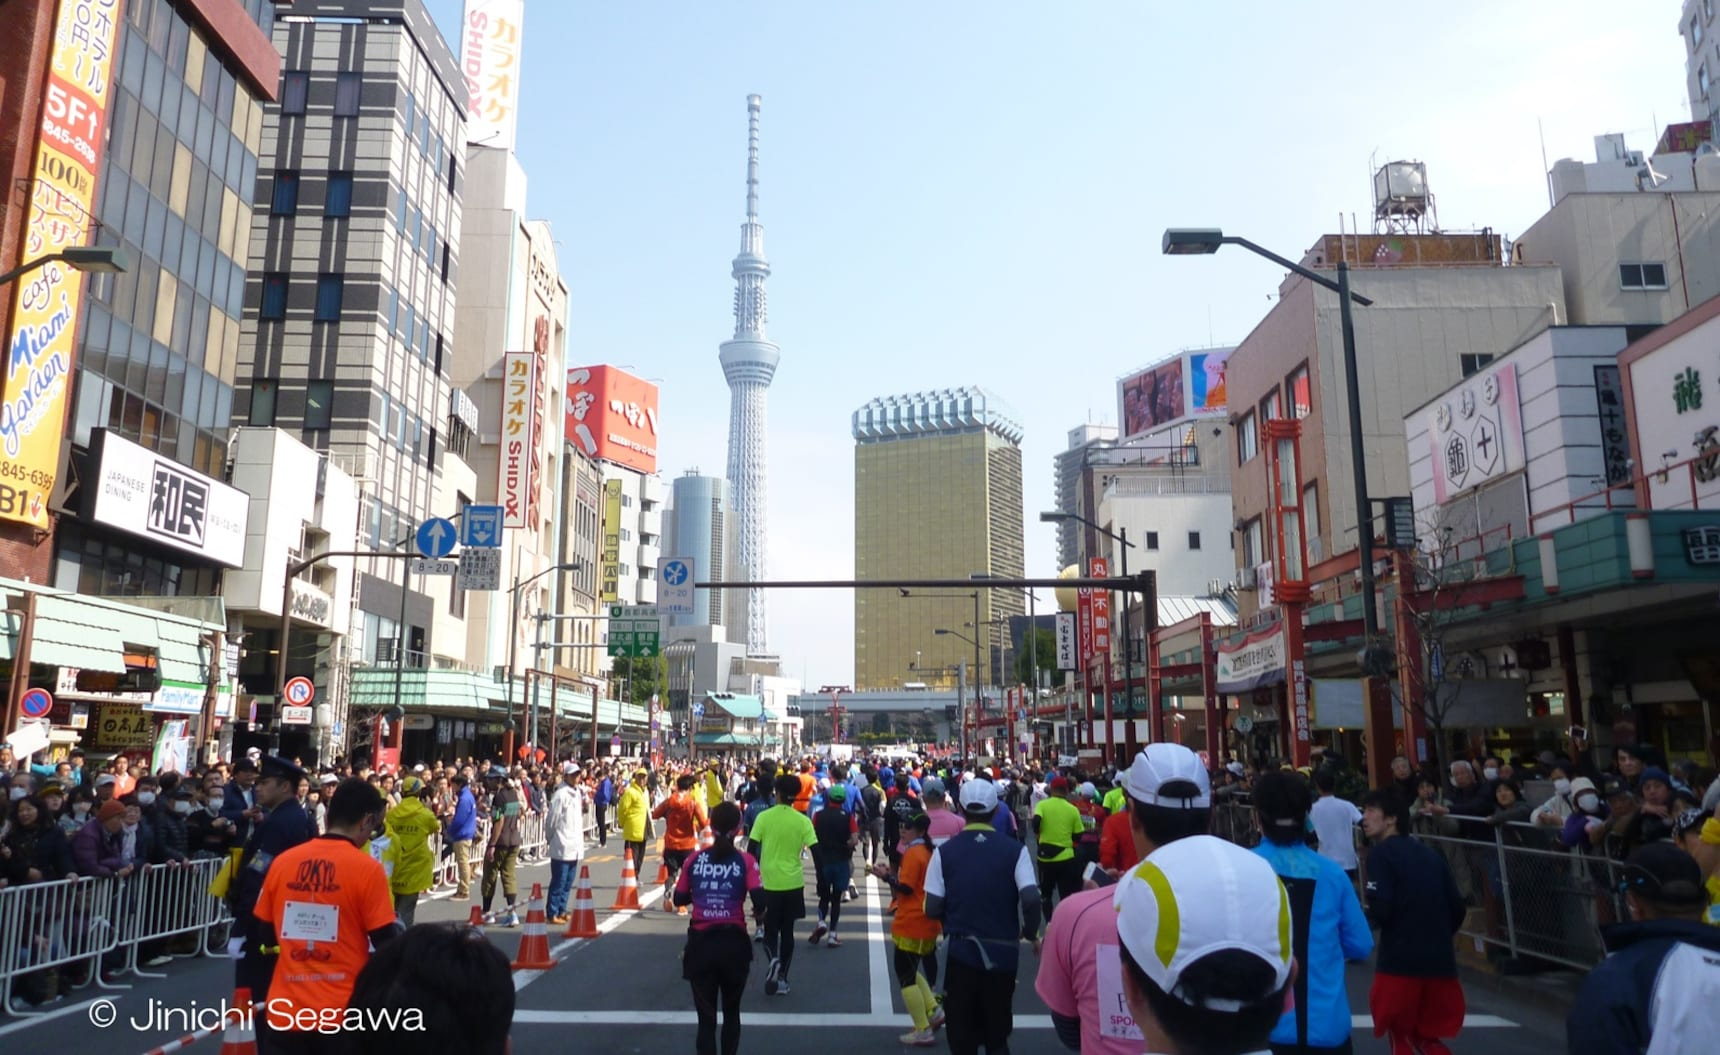 Tokyo Marathon: From Start to Finish